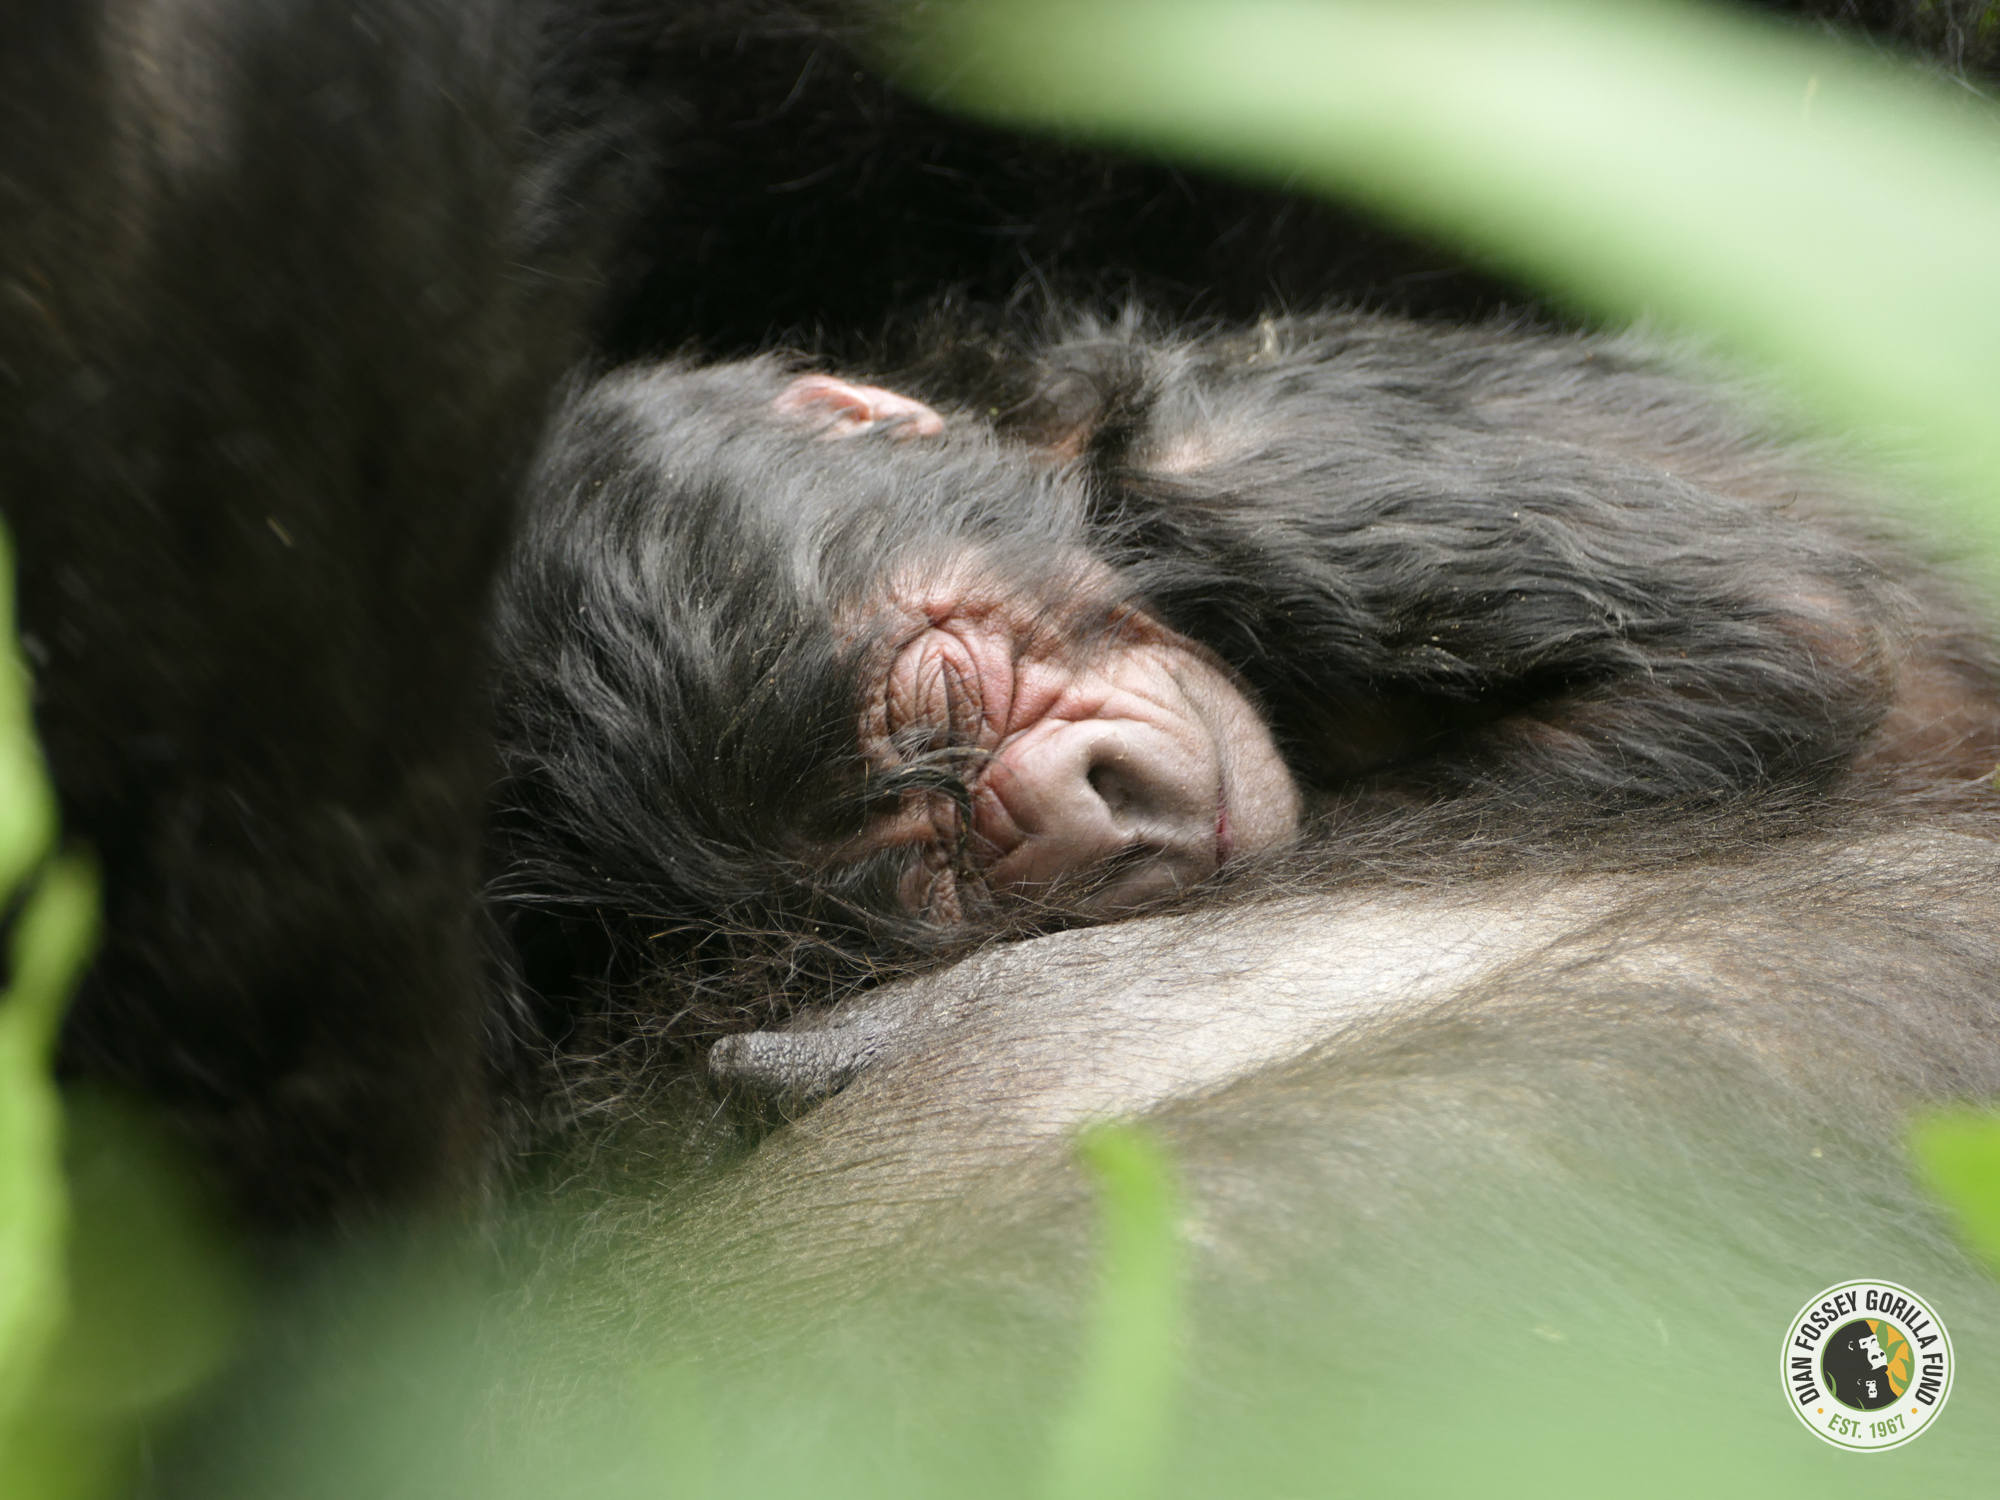 Born on World Gorilla Day! (c) Dian Fossey Fund